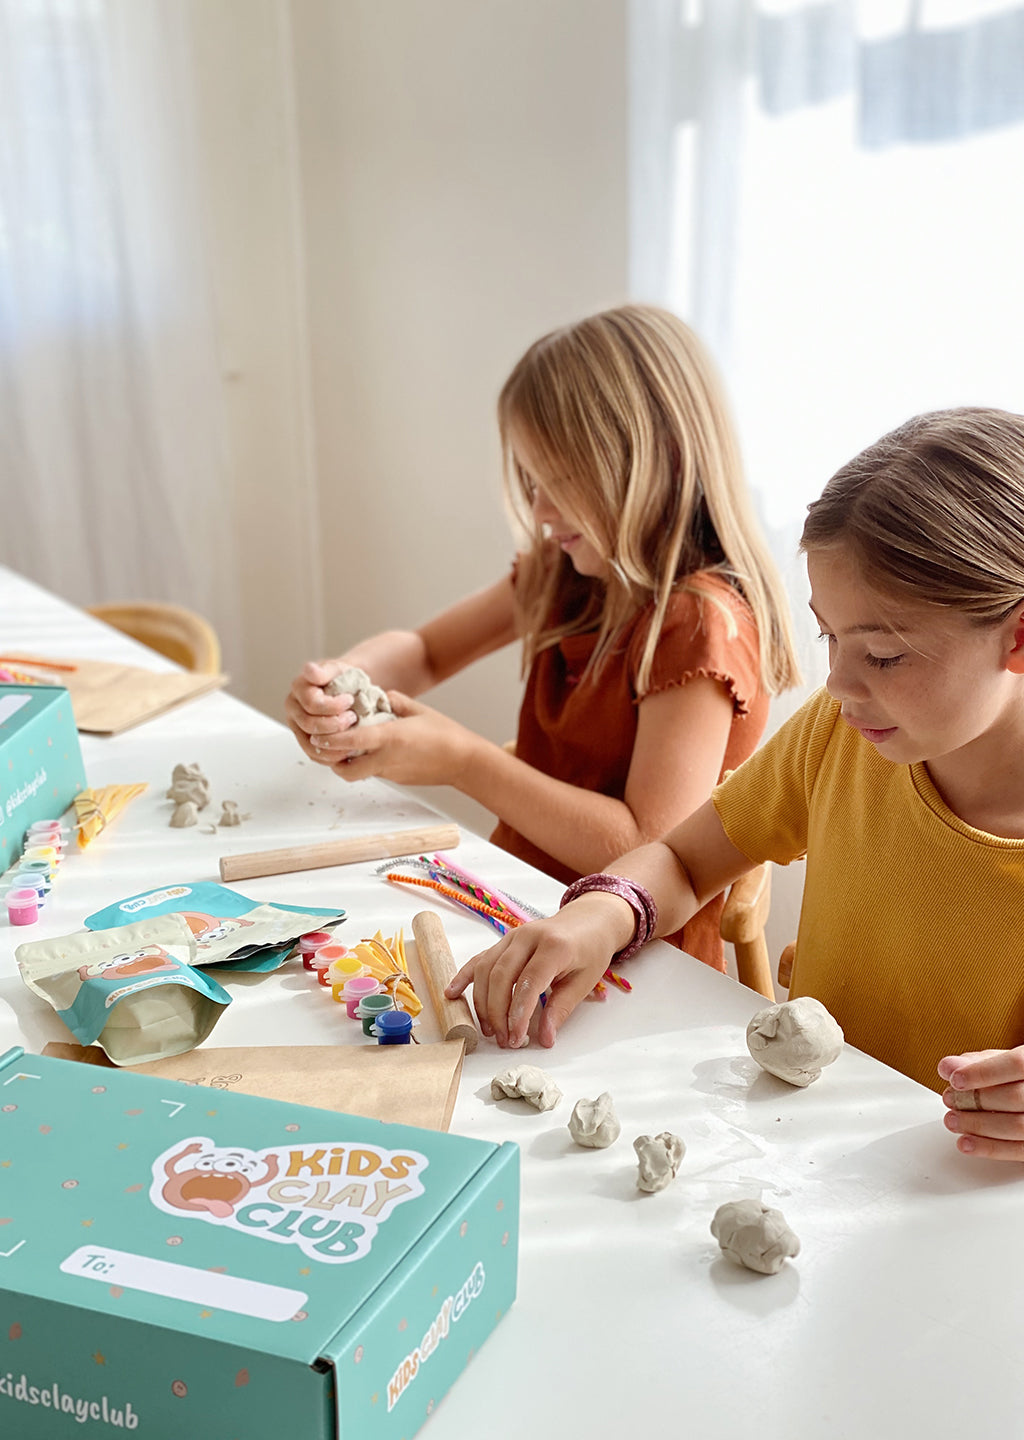 Kids Clay DIY Kit